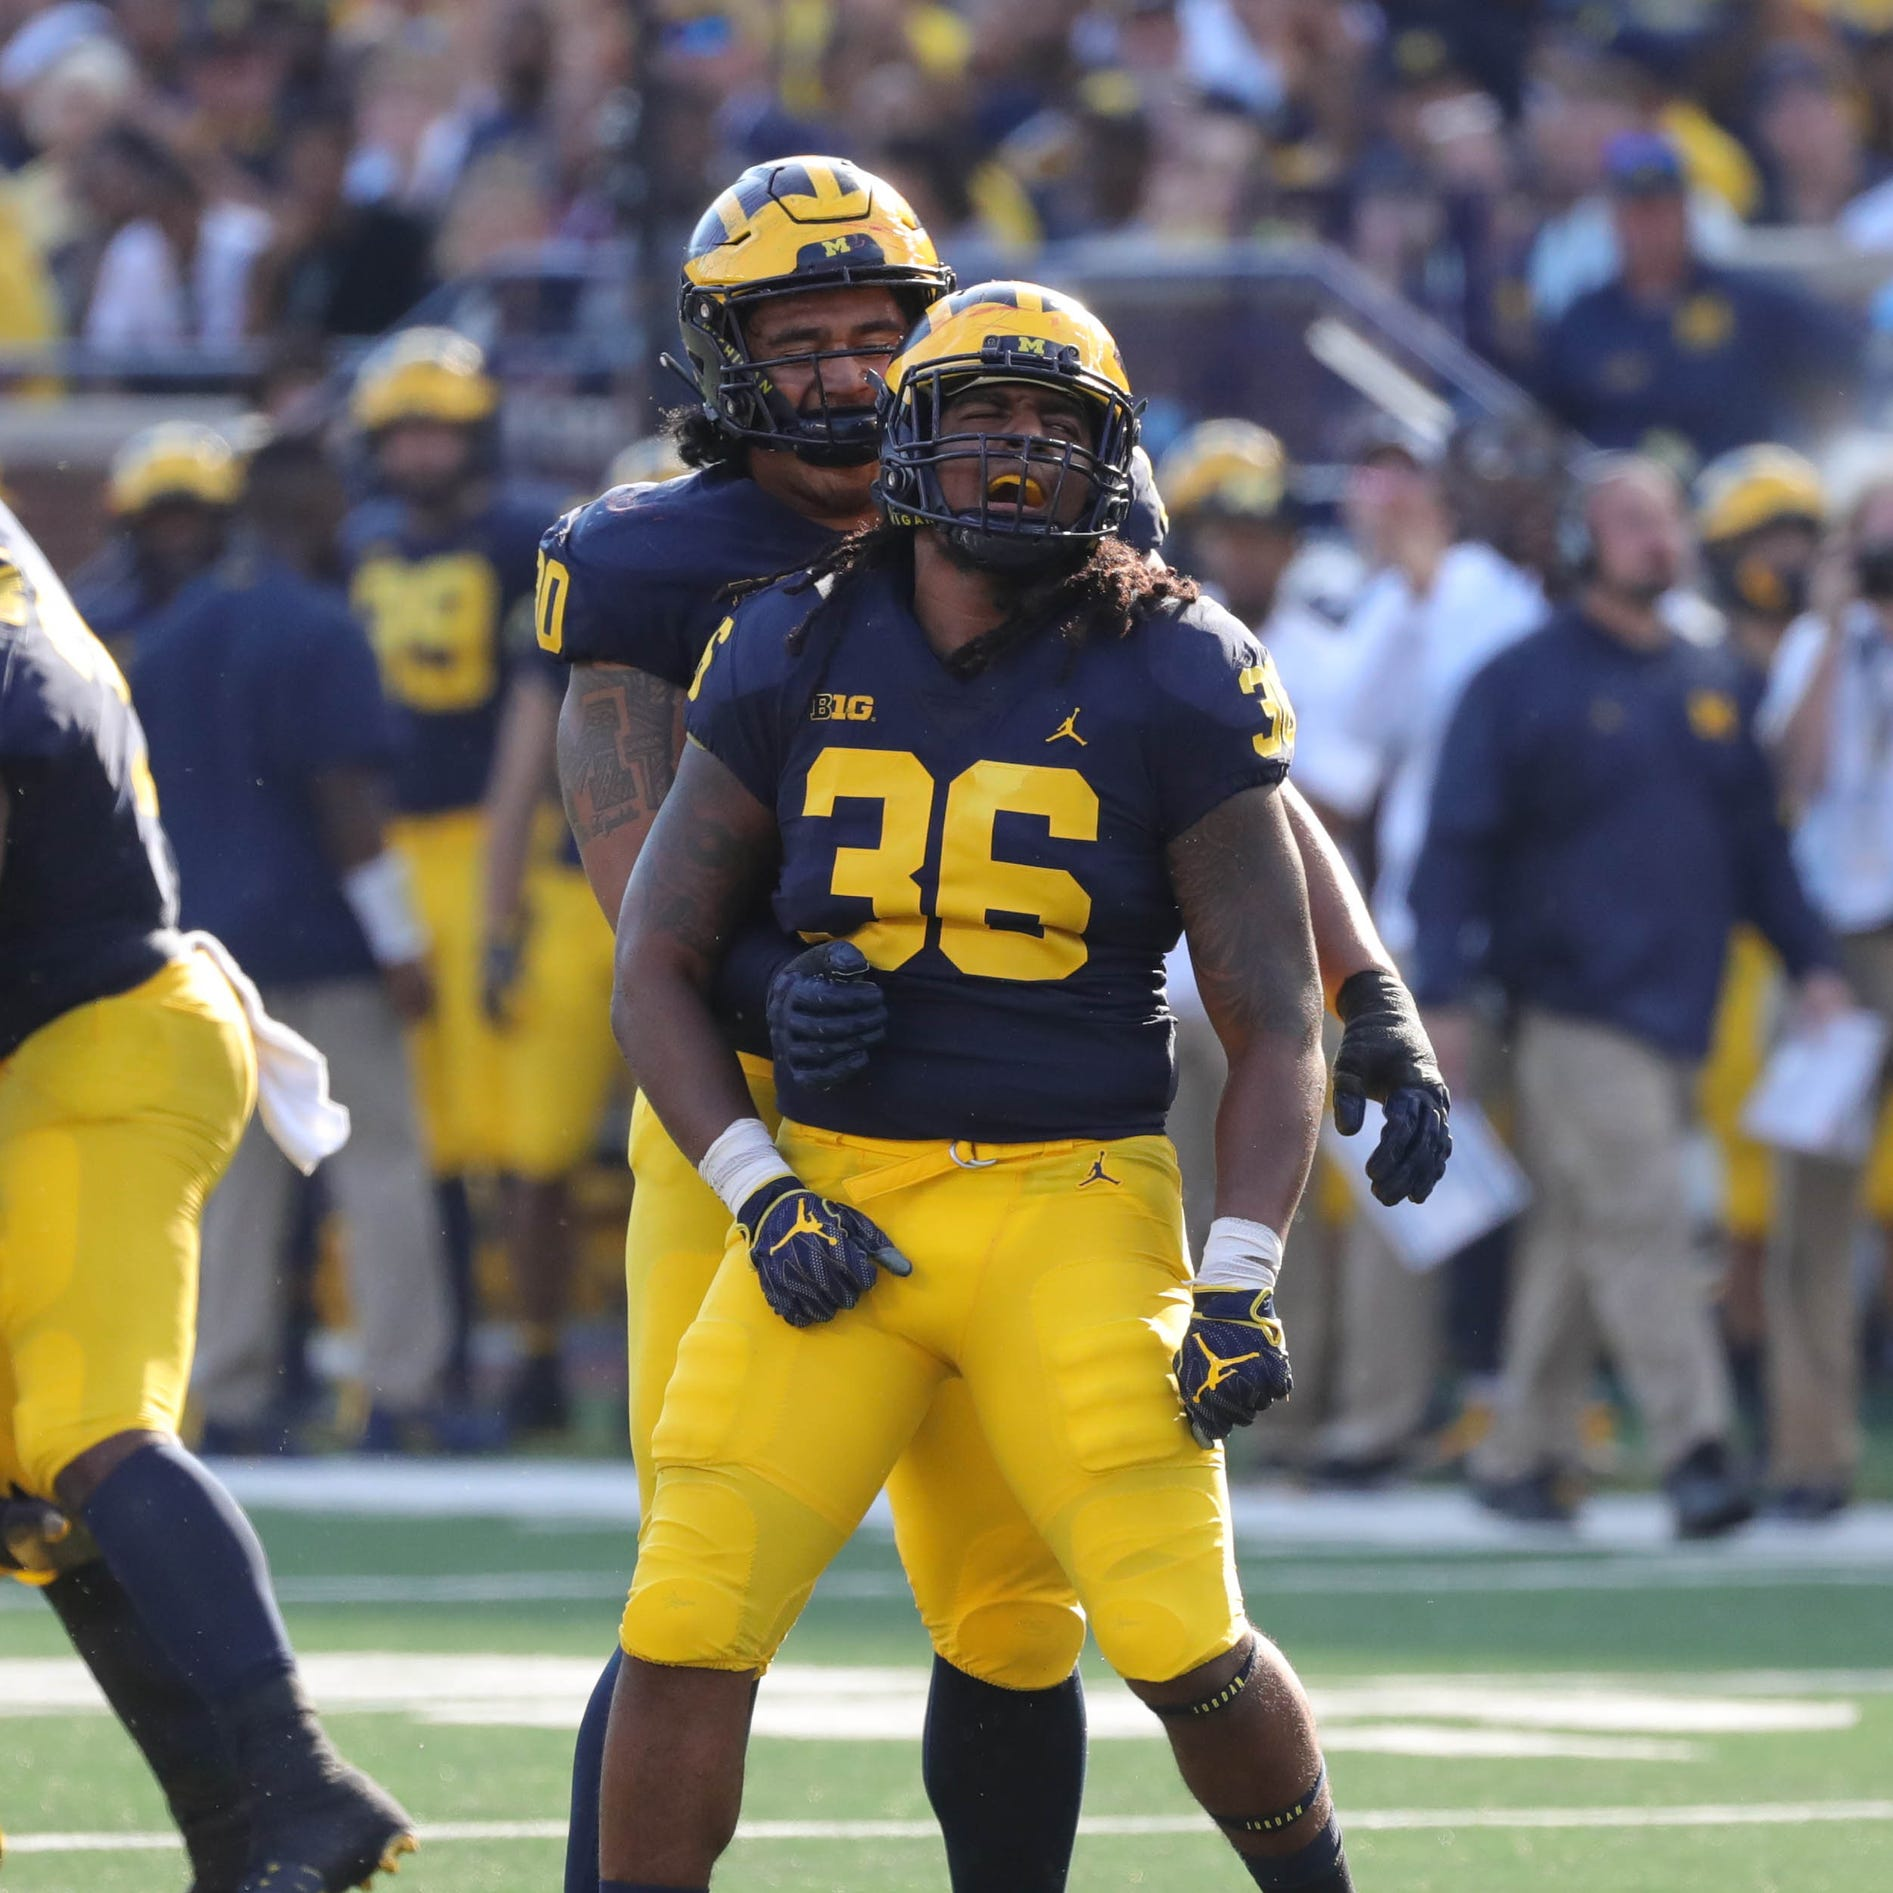 Michigan's Devin Gil (36) celebrates with defensive lineman Bryan Mone against SMU during the first half Saturday, Sept. 15, 2018 at Michigan Stadium.